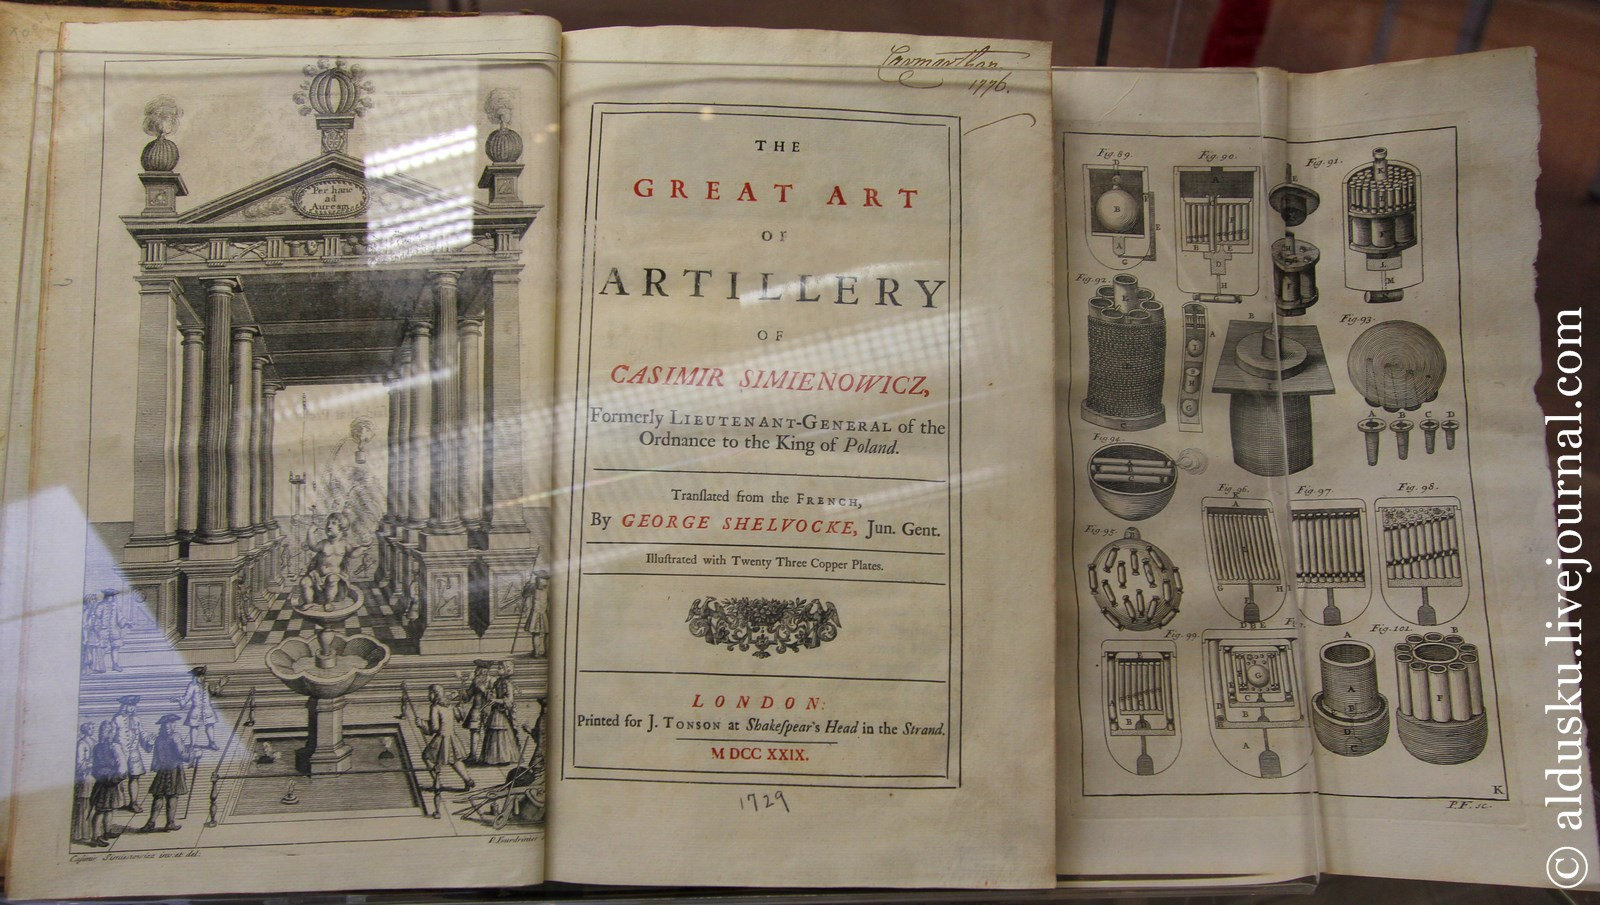 Simienowicz Casimir. The Great art of artillery. London. 1729